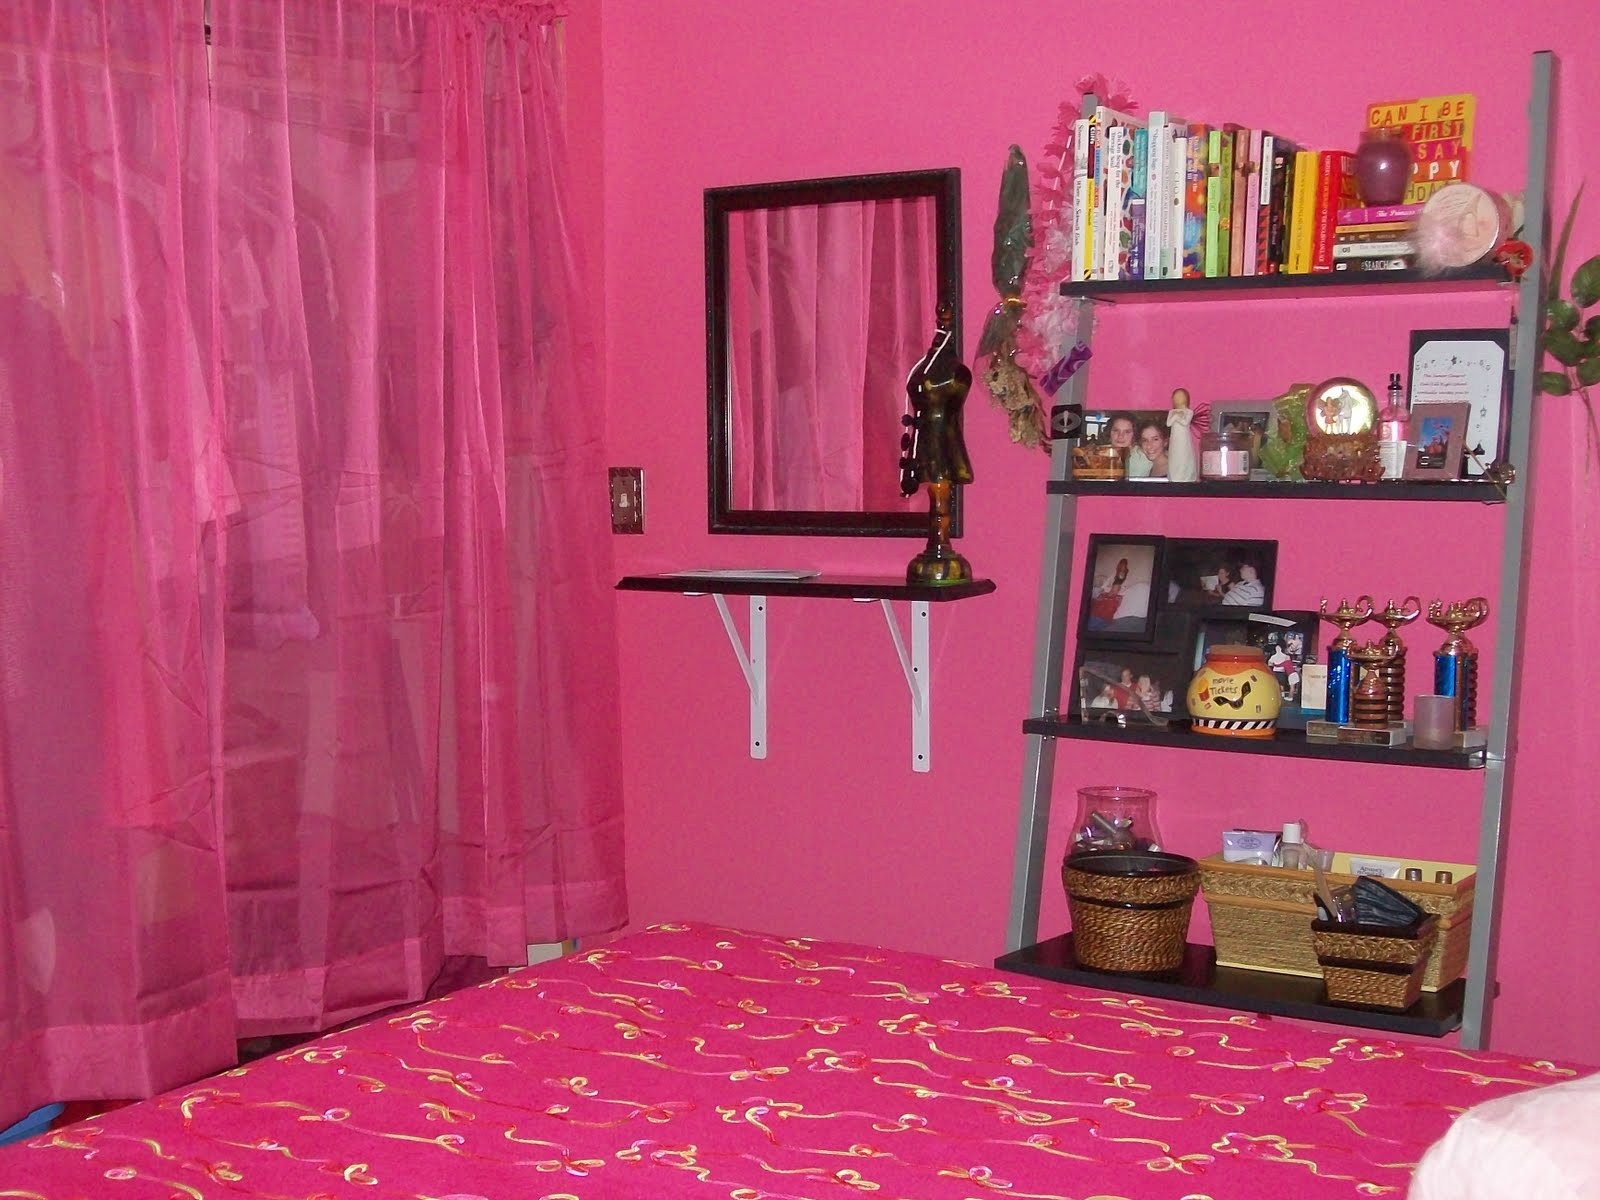 At home on the ridge bedroom redo - Hot pink room ideas ...